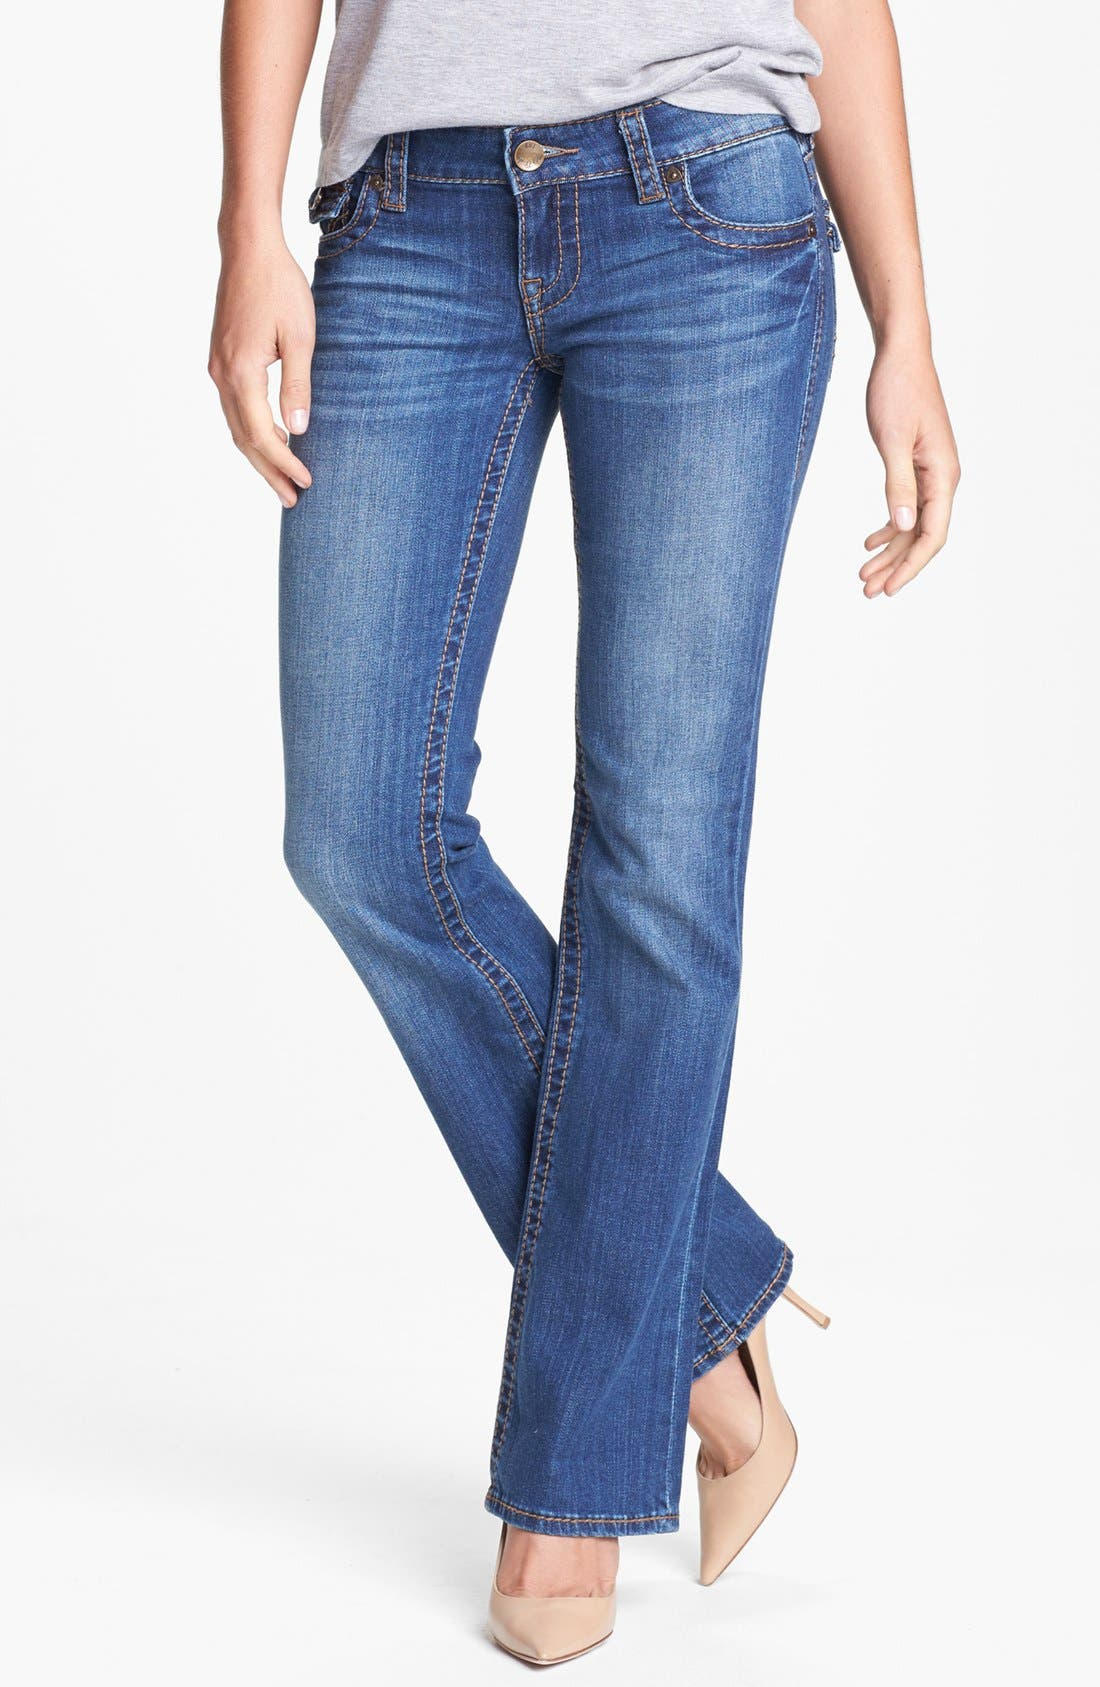 Main Image - KUT from the Kloth 'Kate' Bootcut Jeans (Regular & Tall) (Abundance)